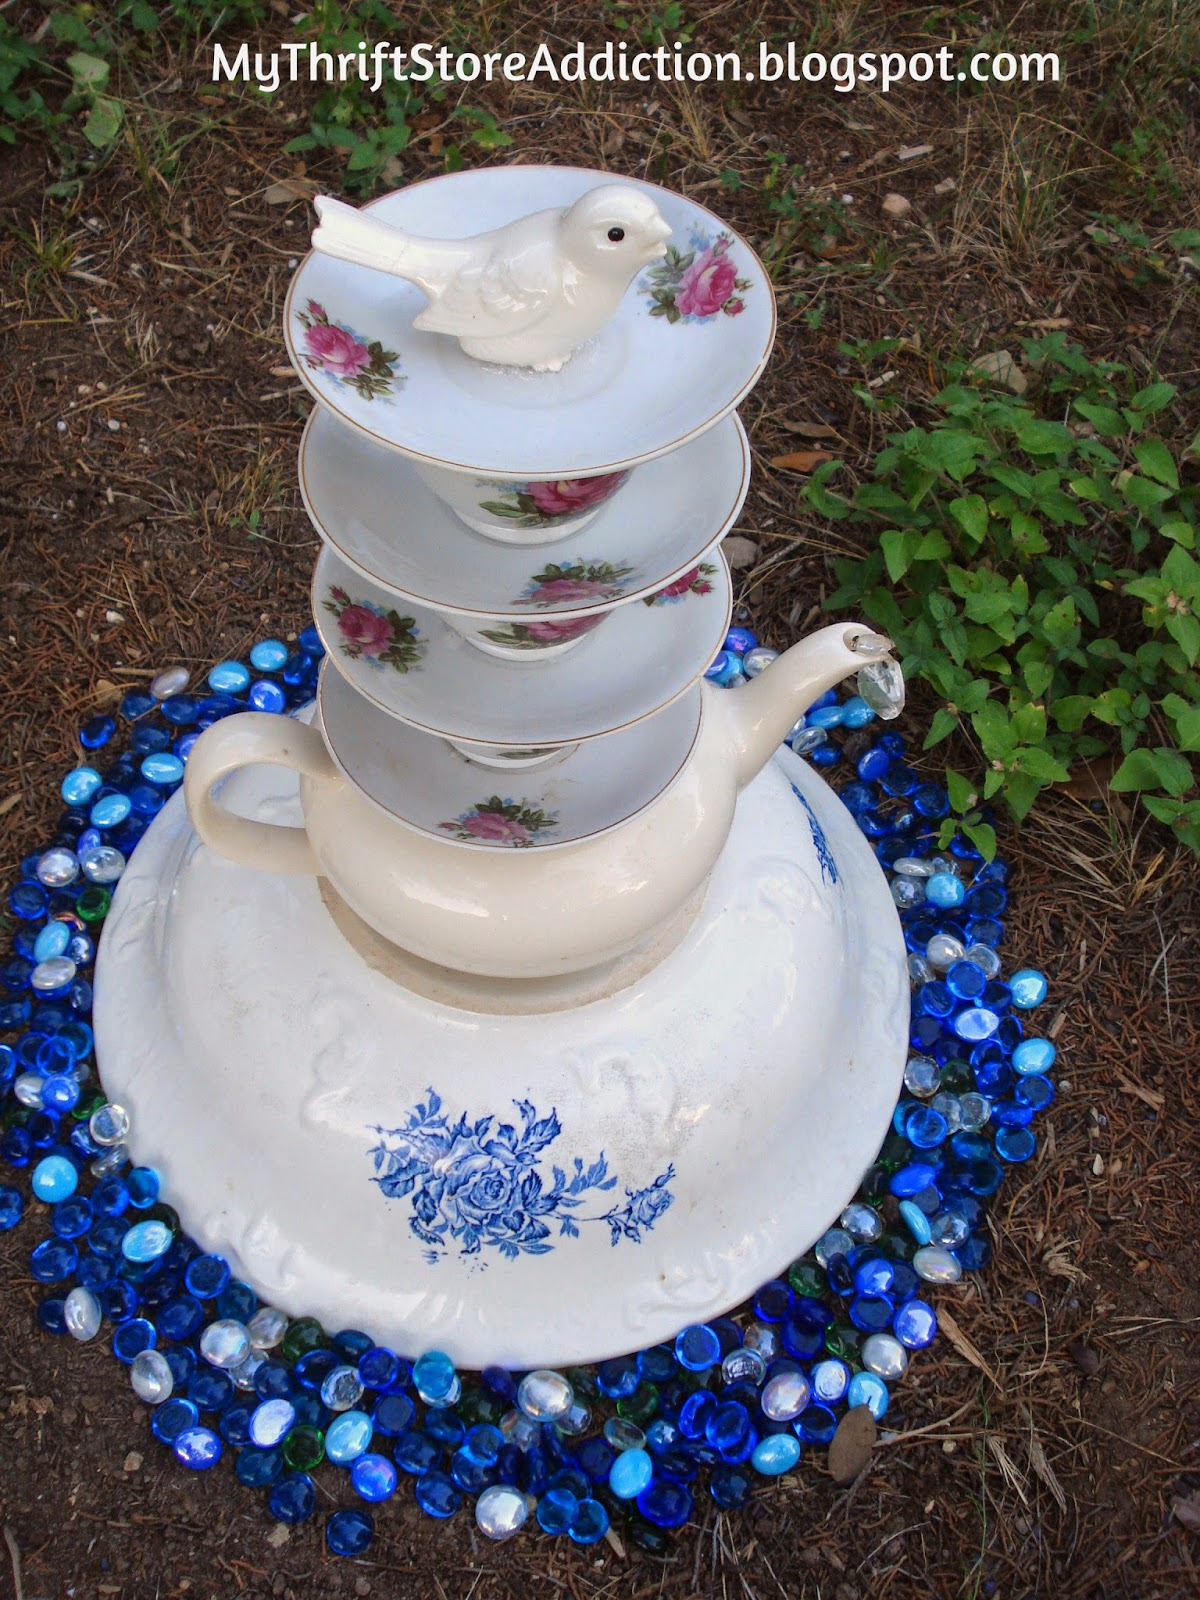 Thrift Store Yard: Teacup Tower mythriftstoreaddiction.blogspot.com Find teacups from yard sales and thrift stores to create a tower of teacups!